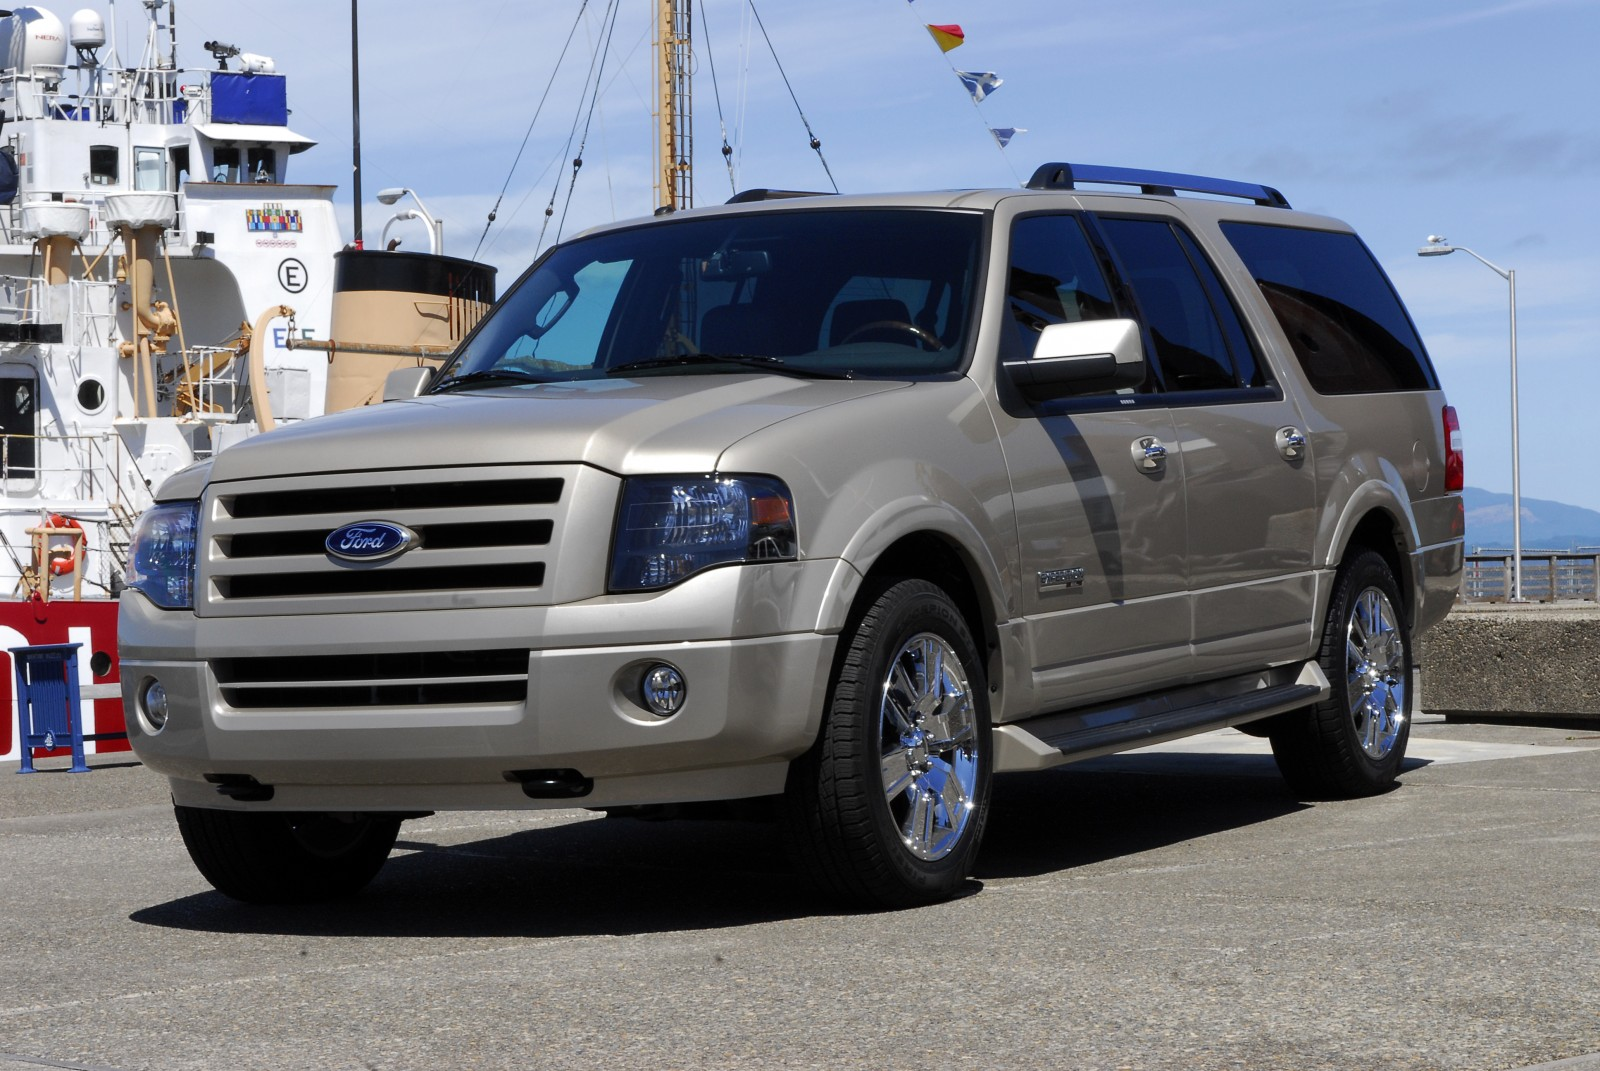 http://www.almrsal.com/wp-content/uploads/2013/03/2013_ford_expedition_el_suvcrossover_limited_f3q.jpg